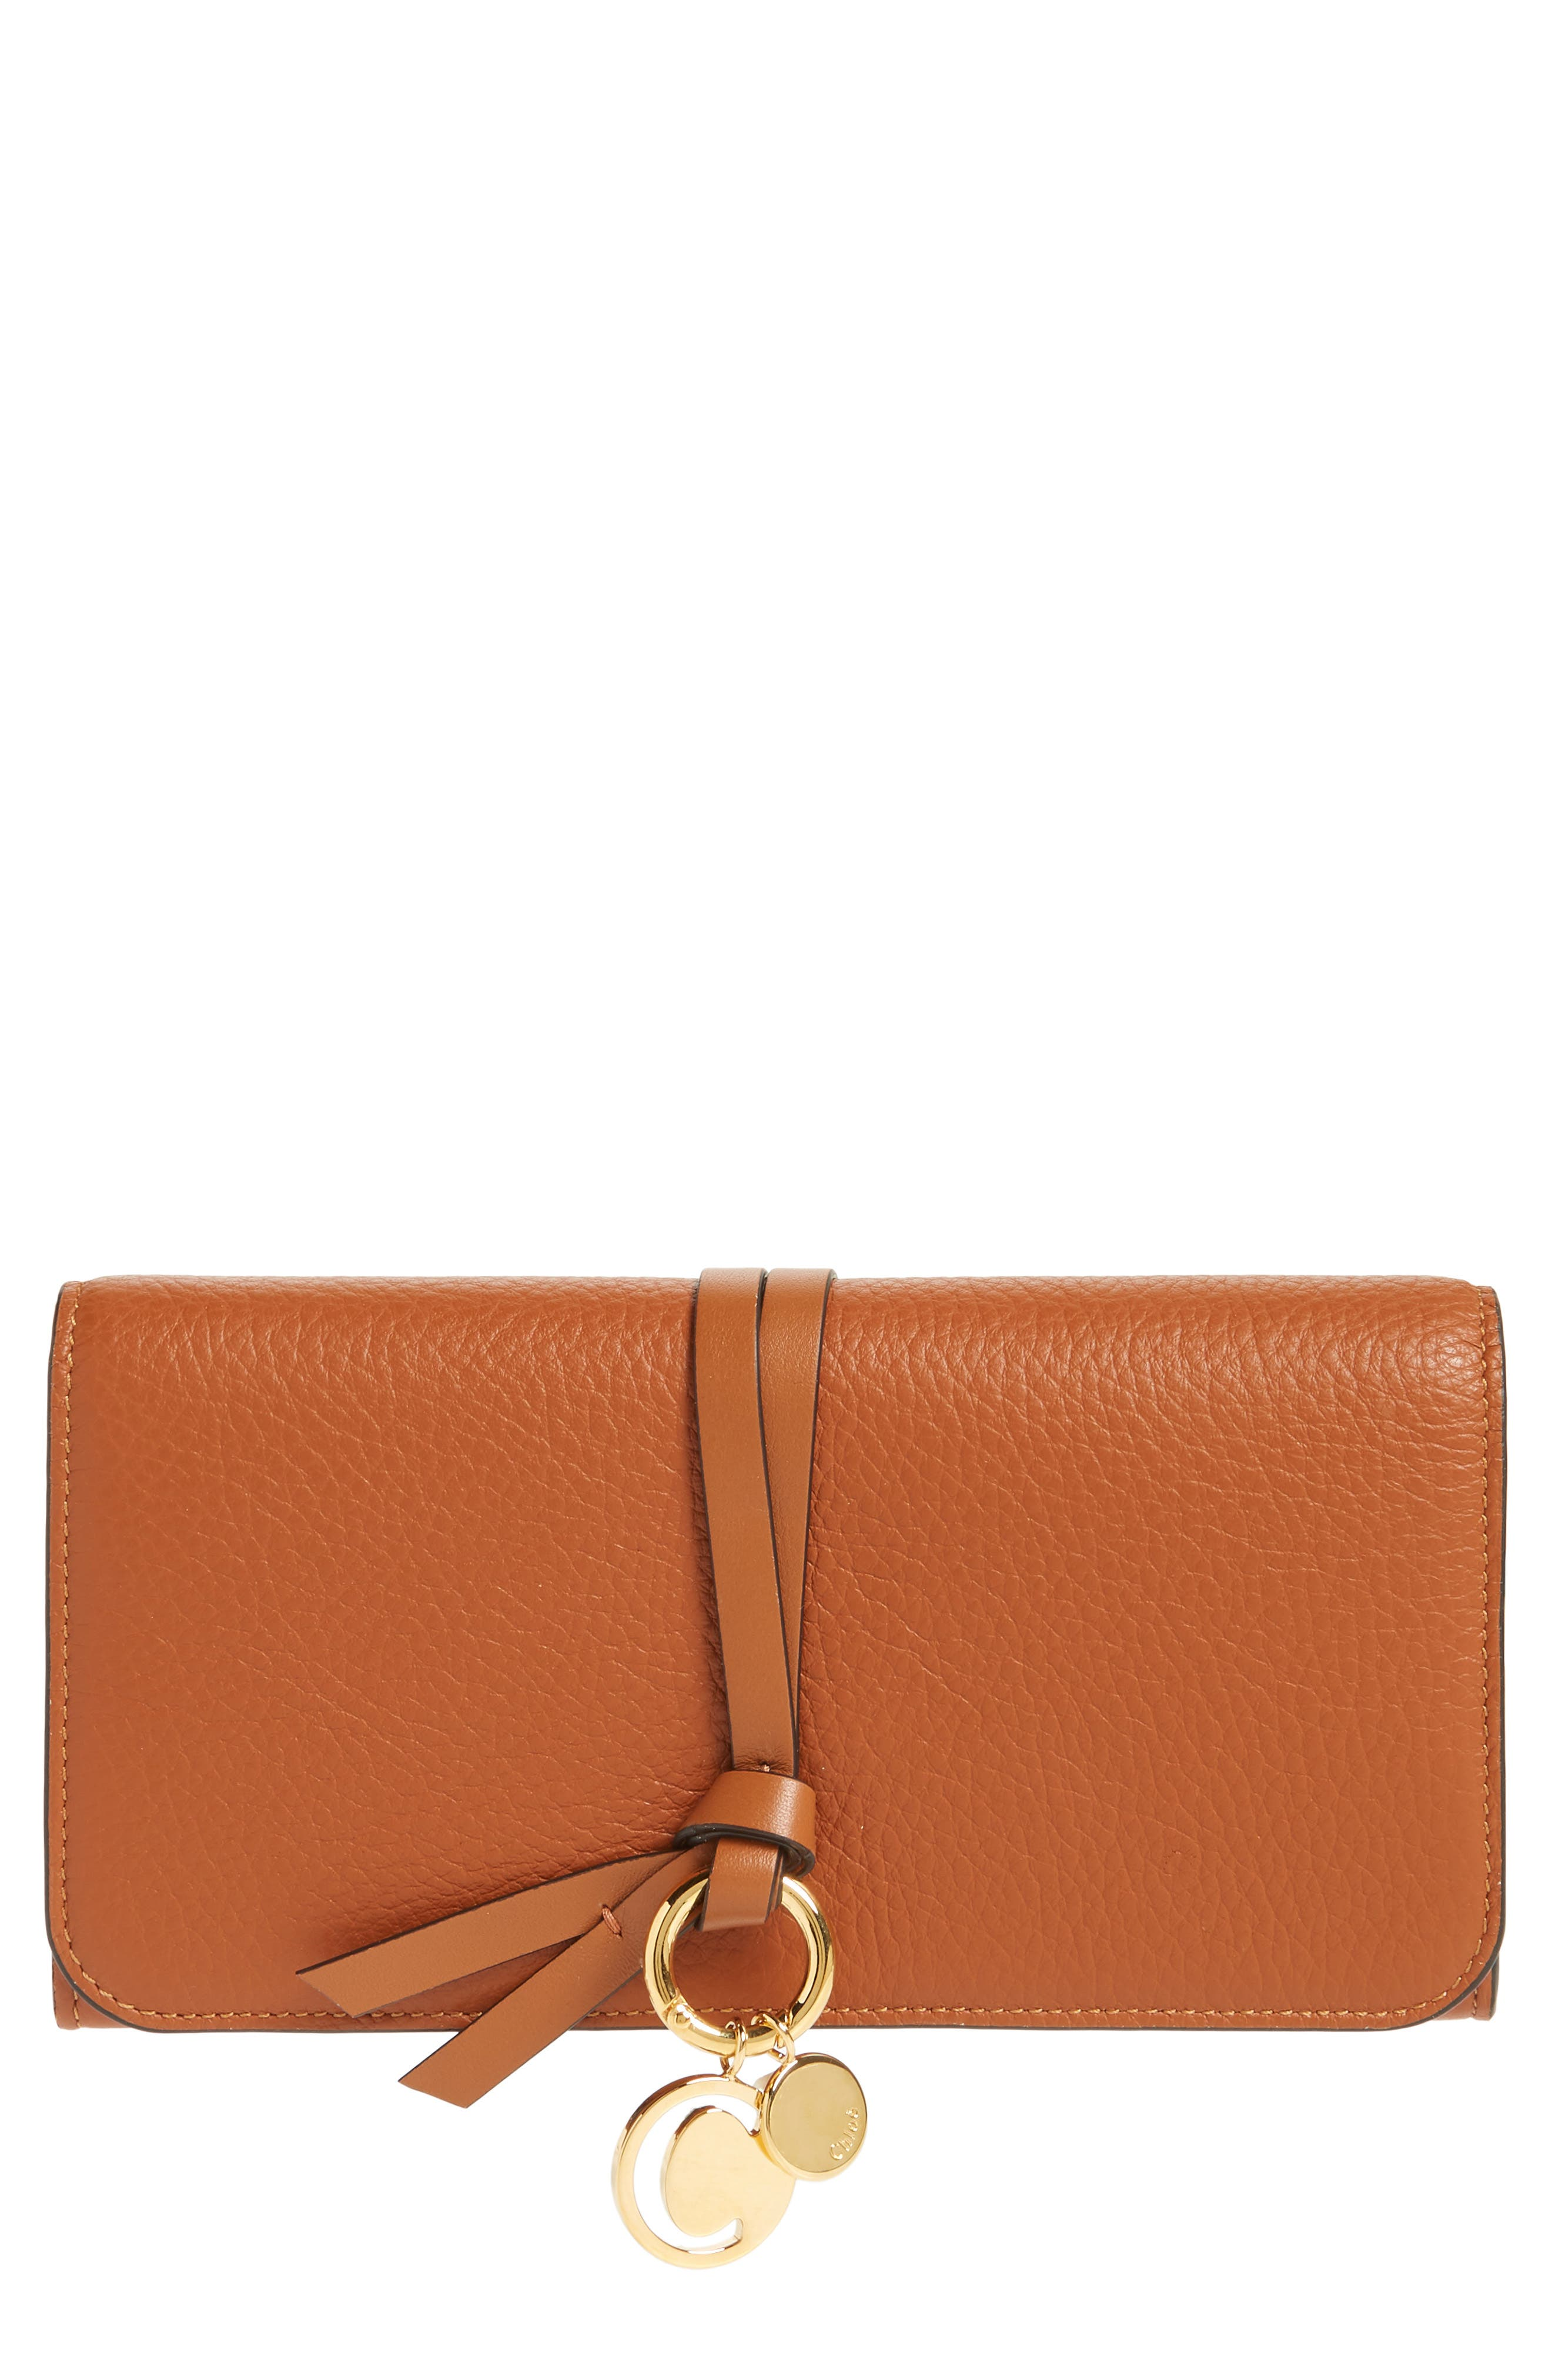 Alphabet Leather Wallet,                             Main thumbnail 1, color,                             TAN